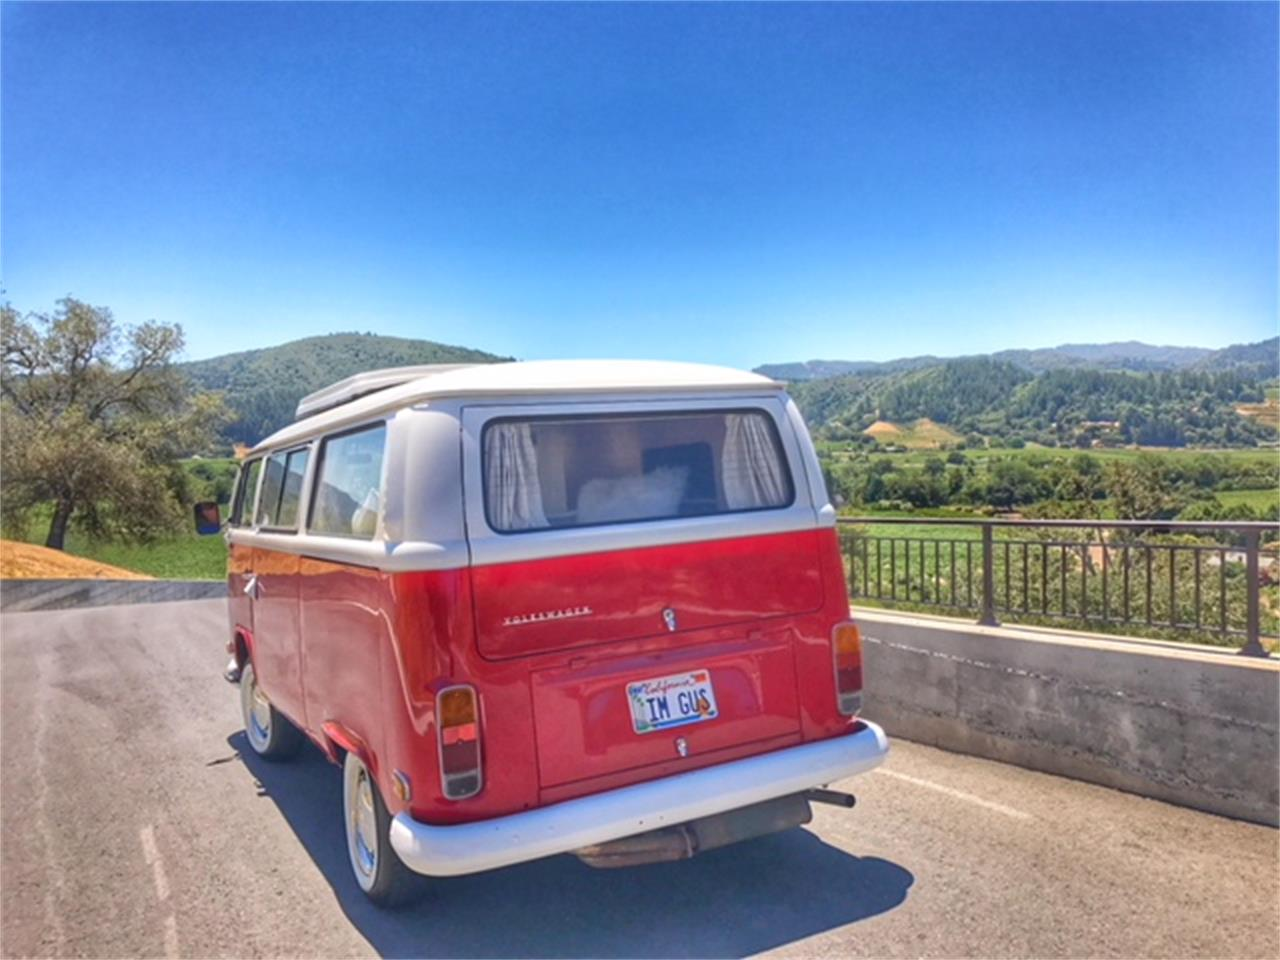 Large Picture of '72 Volkswagen Bus - $31,950.00 Offered by a Private Seller - MU0C